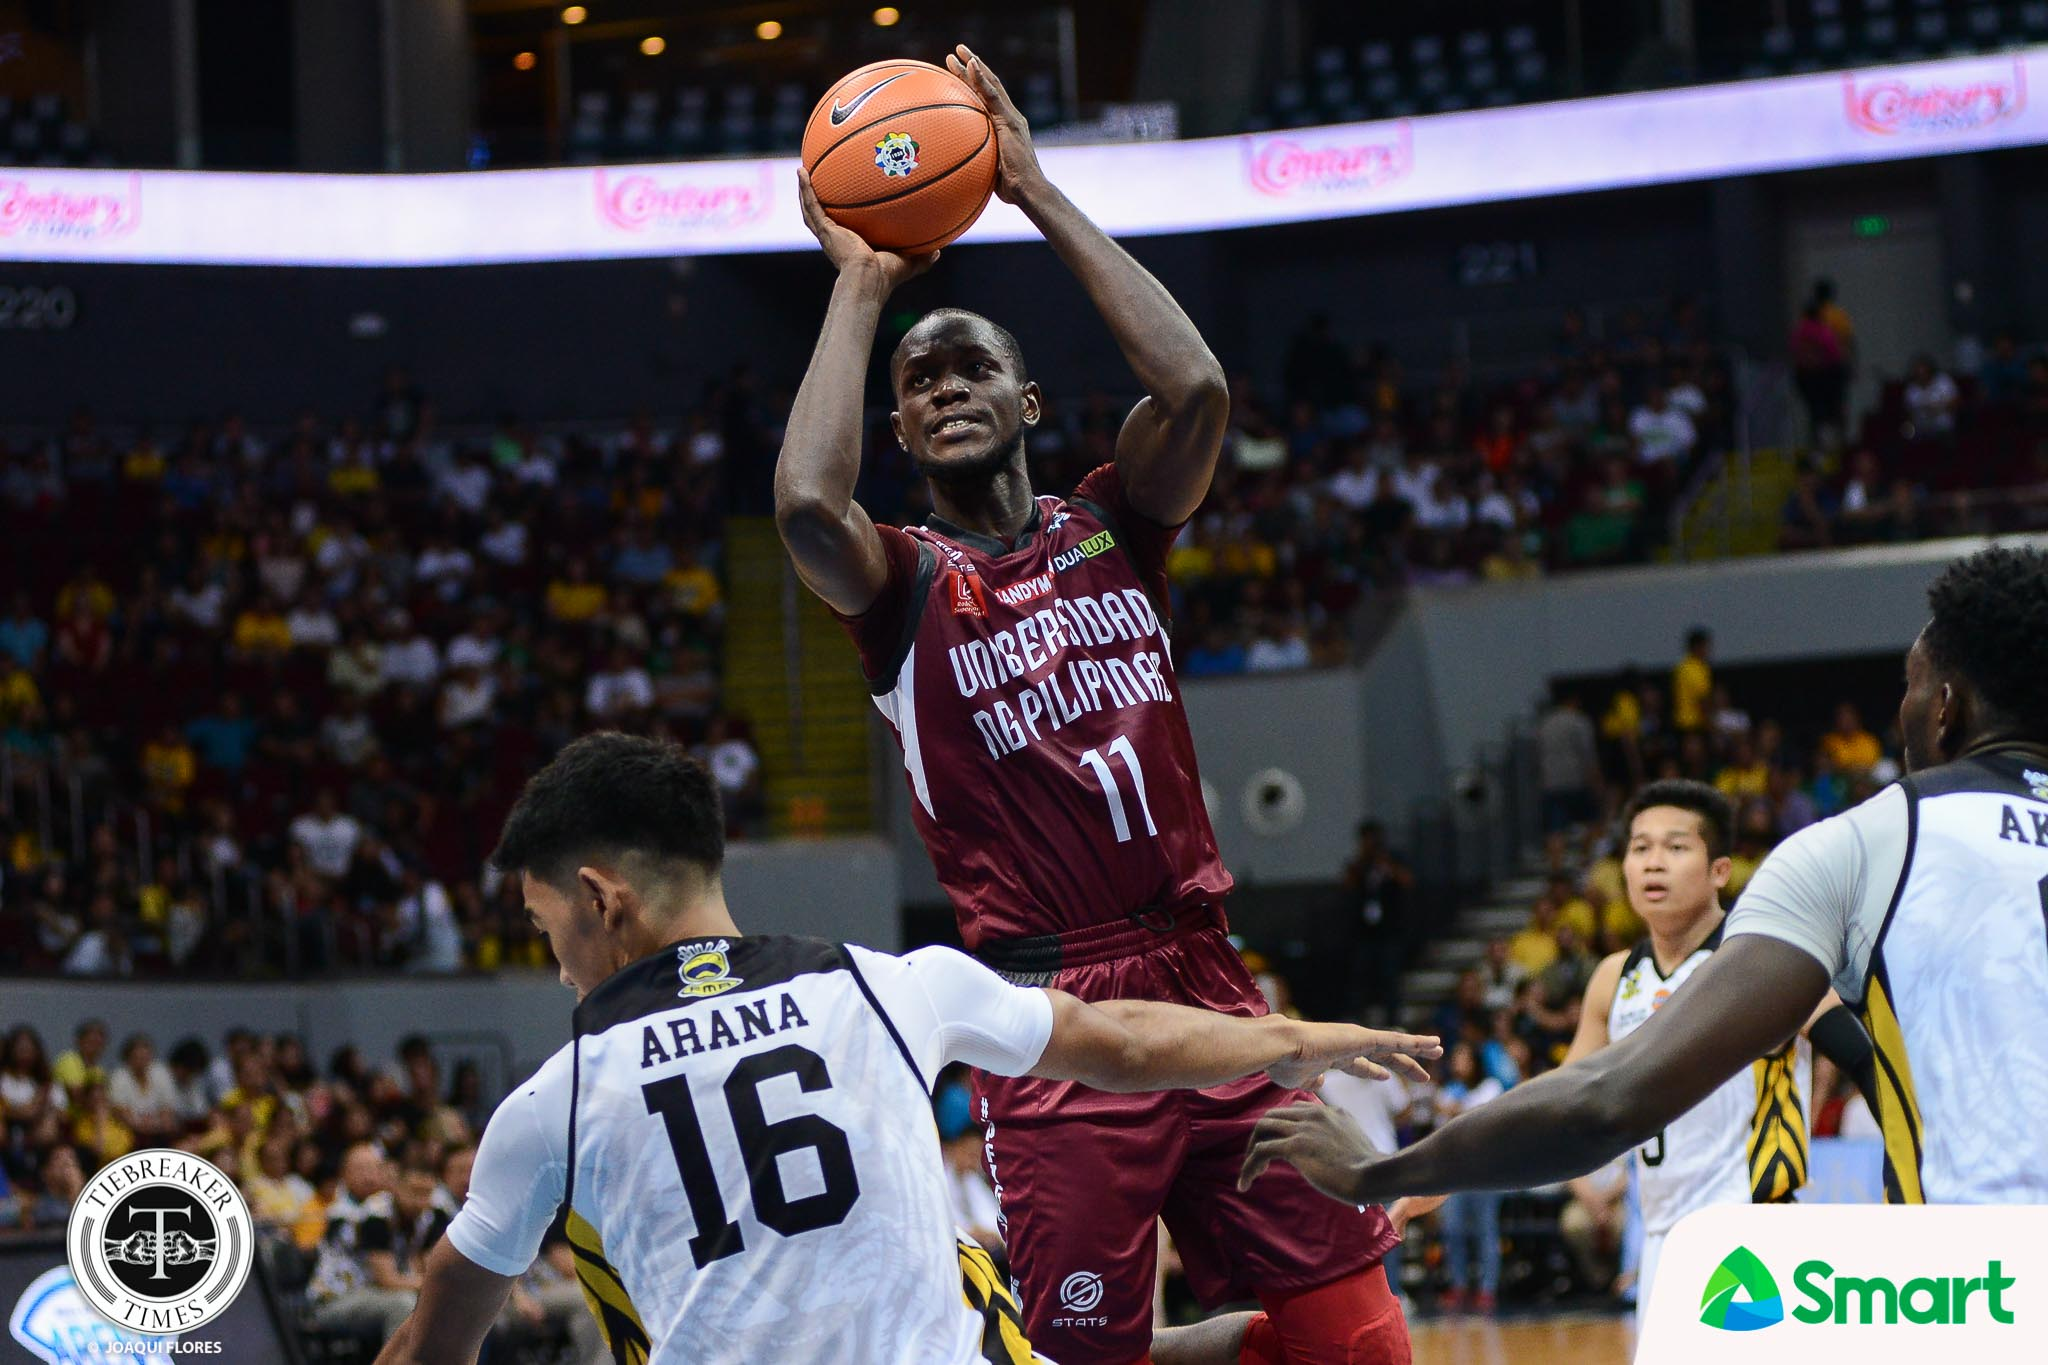 Tiebreaker Times Ibrahim Ouattara doesn't mind if he's the stop-gap for Bright Akhuetie Basketball News UAAP UP  UP Men's Basketball UAAP Season 80 Men's Basketball UAAP Season 80 Ibrahim Ouattara Bright Akhuetie